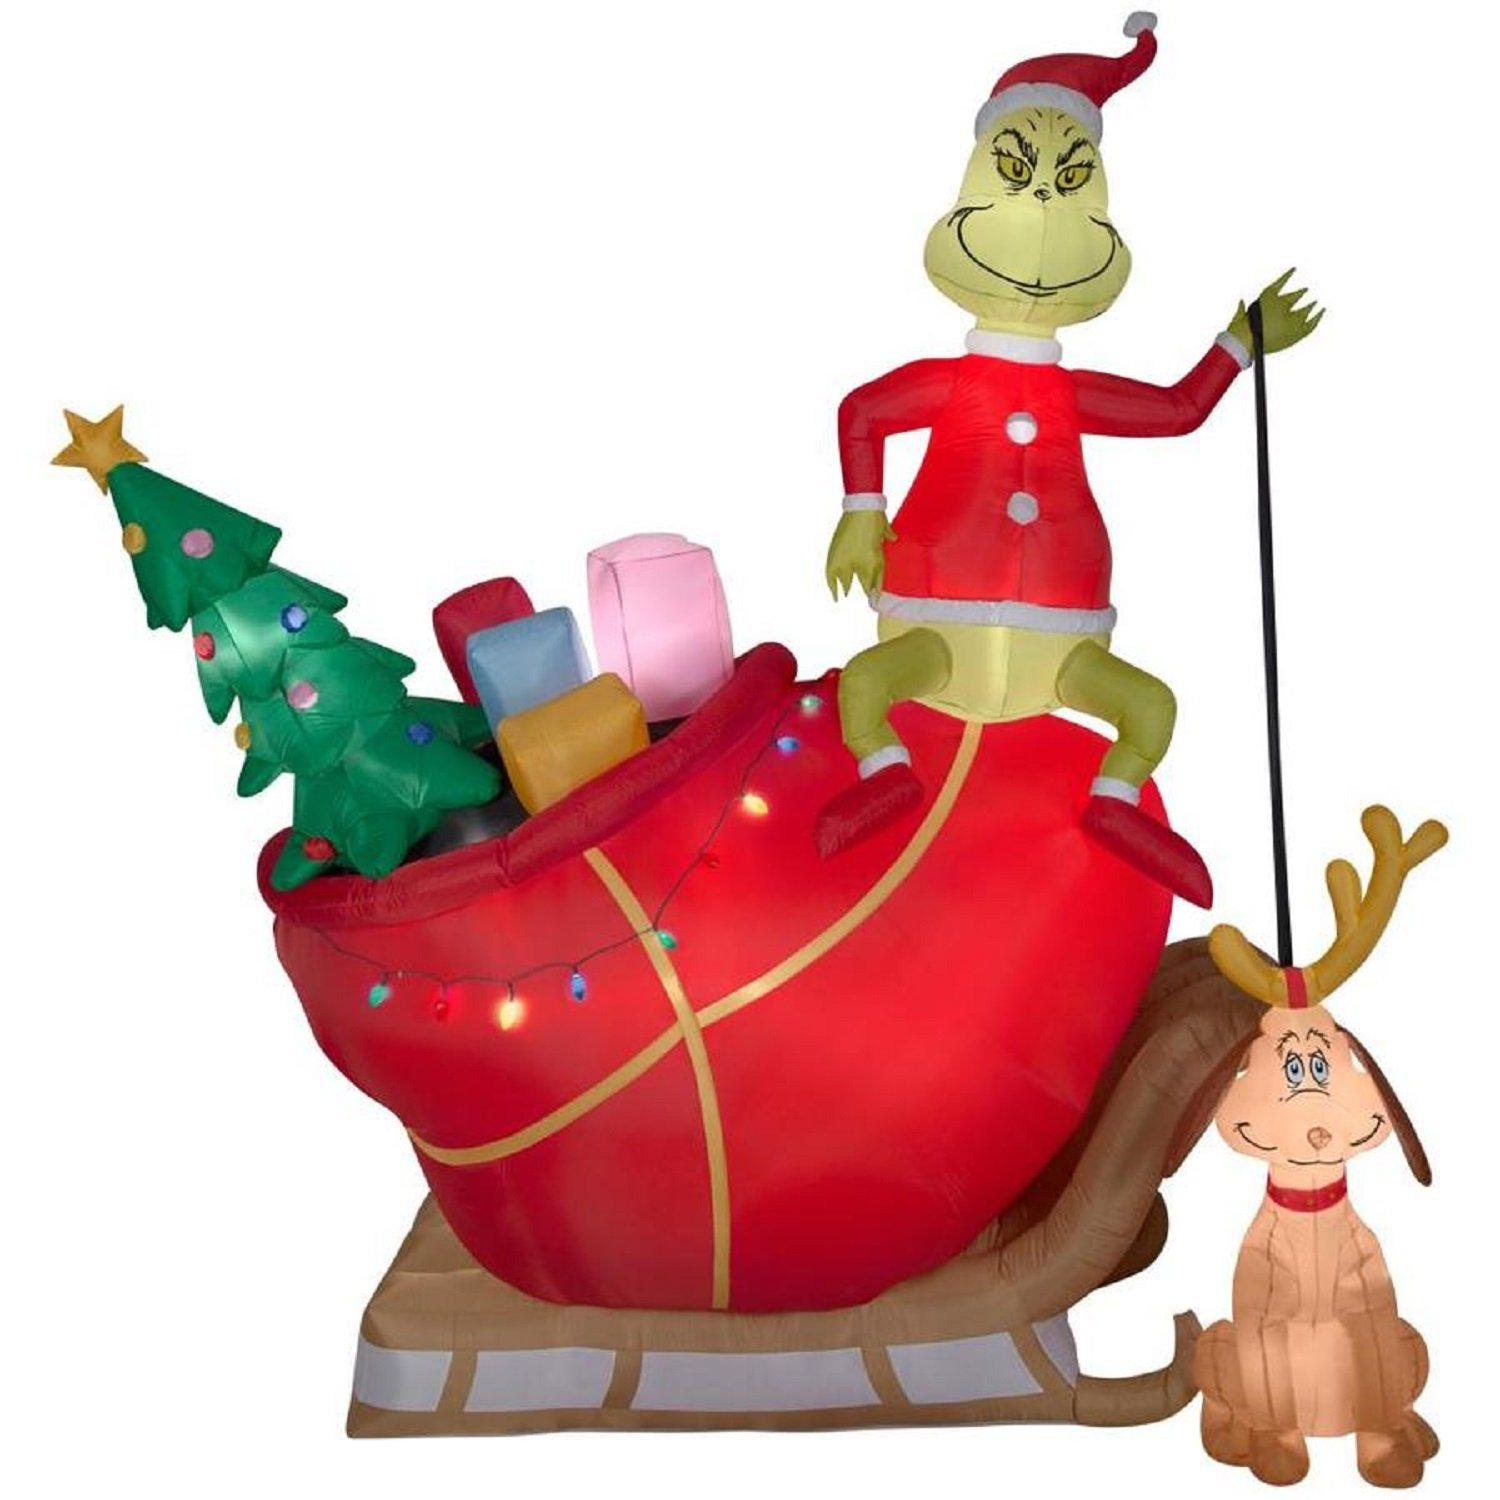 Christmas Inflatable 12' Grinch on Sleigh w/ Dog Max Dr Suess Airblown By Gemmy by Gemmy